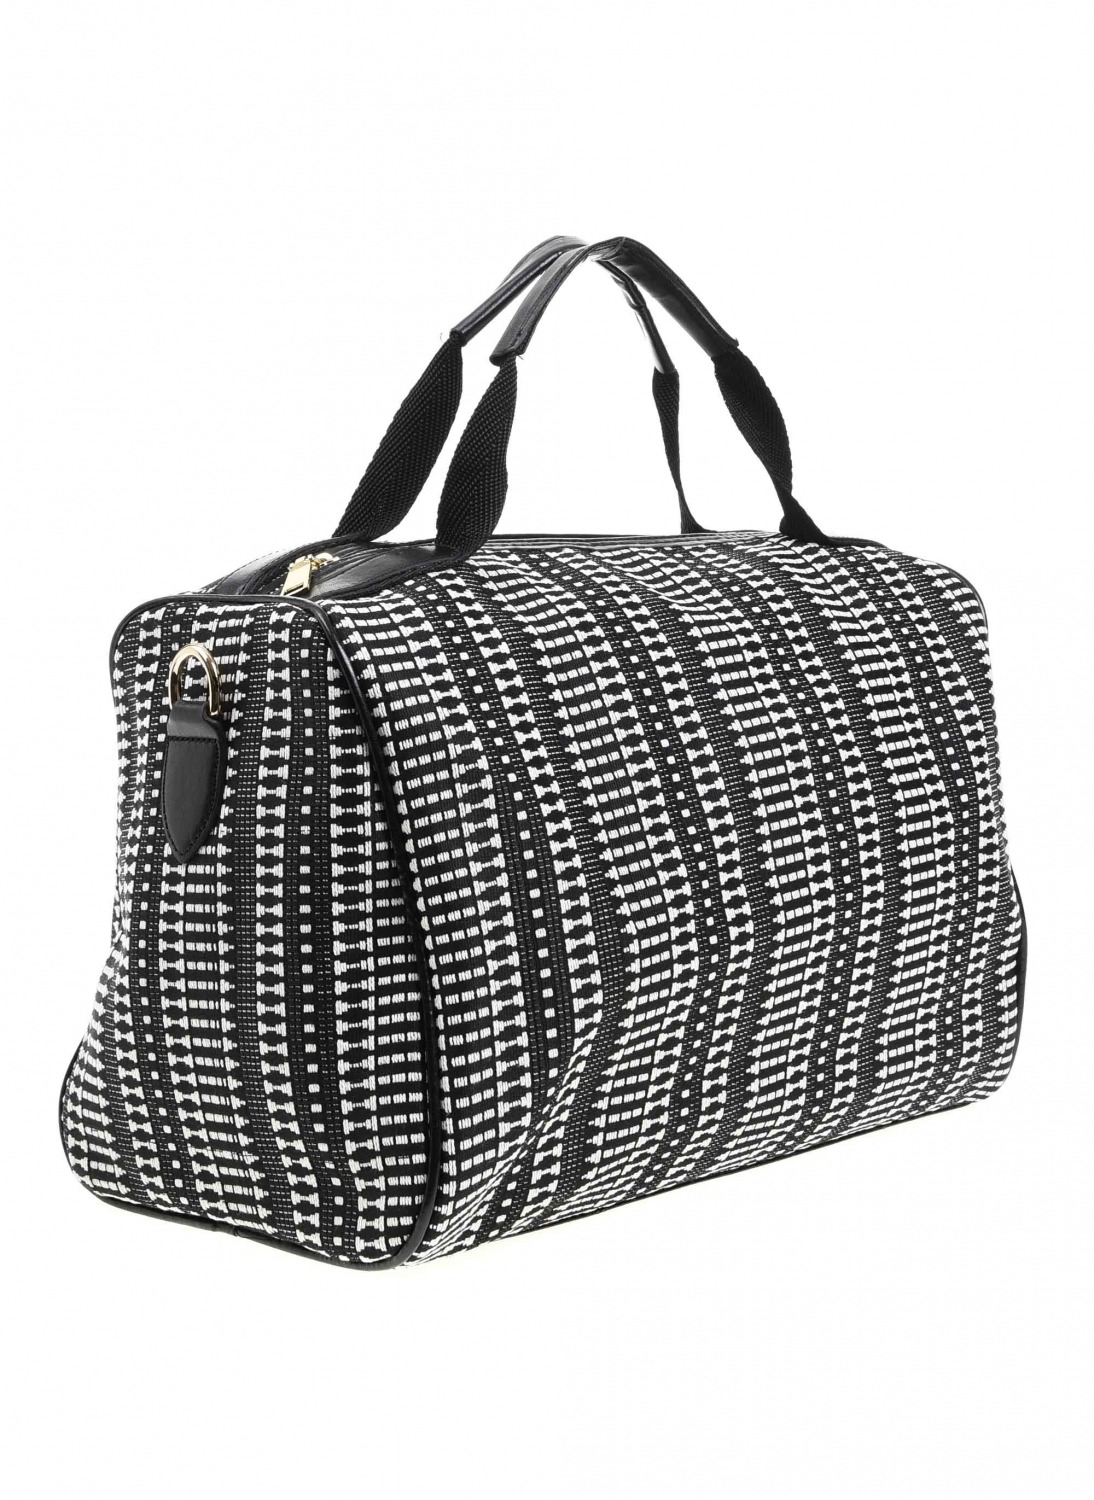 MIZALLE Knitting Large Hand Bag (Black-White) (1)